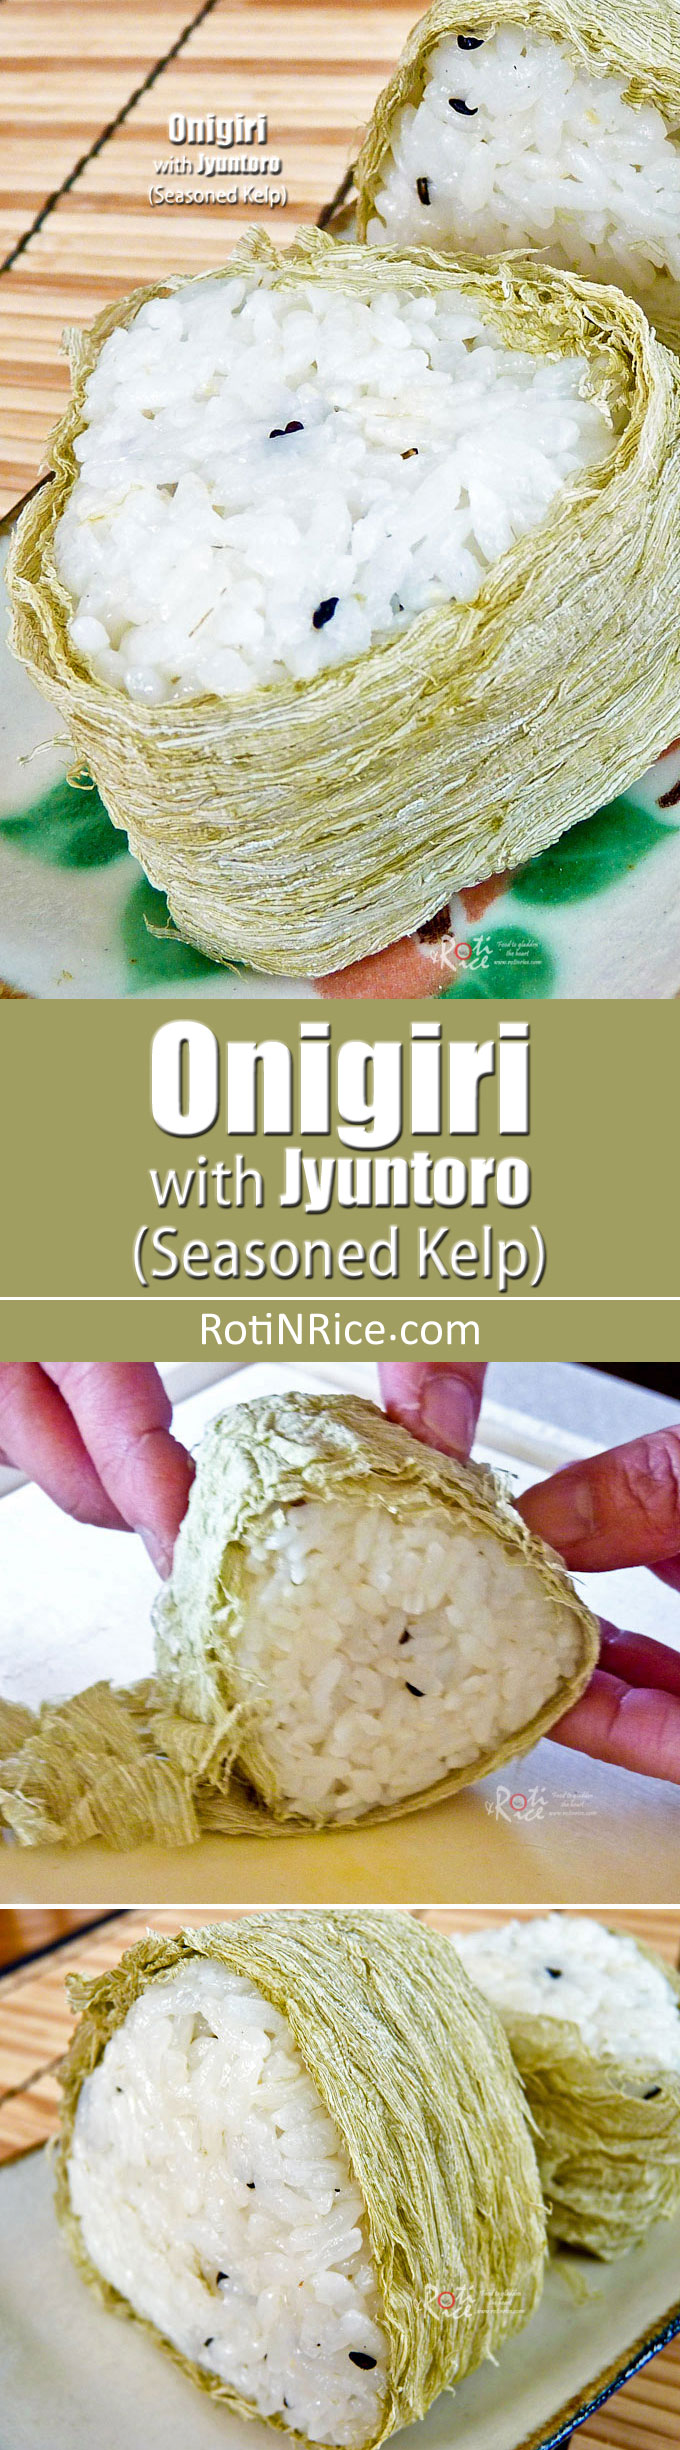 Onigiri with Jyuntoro - Japanese rice balls wrapped with seasoned dried kelp. Perfect in the lunch box and great as a tasty snack. | RotiNRice.com